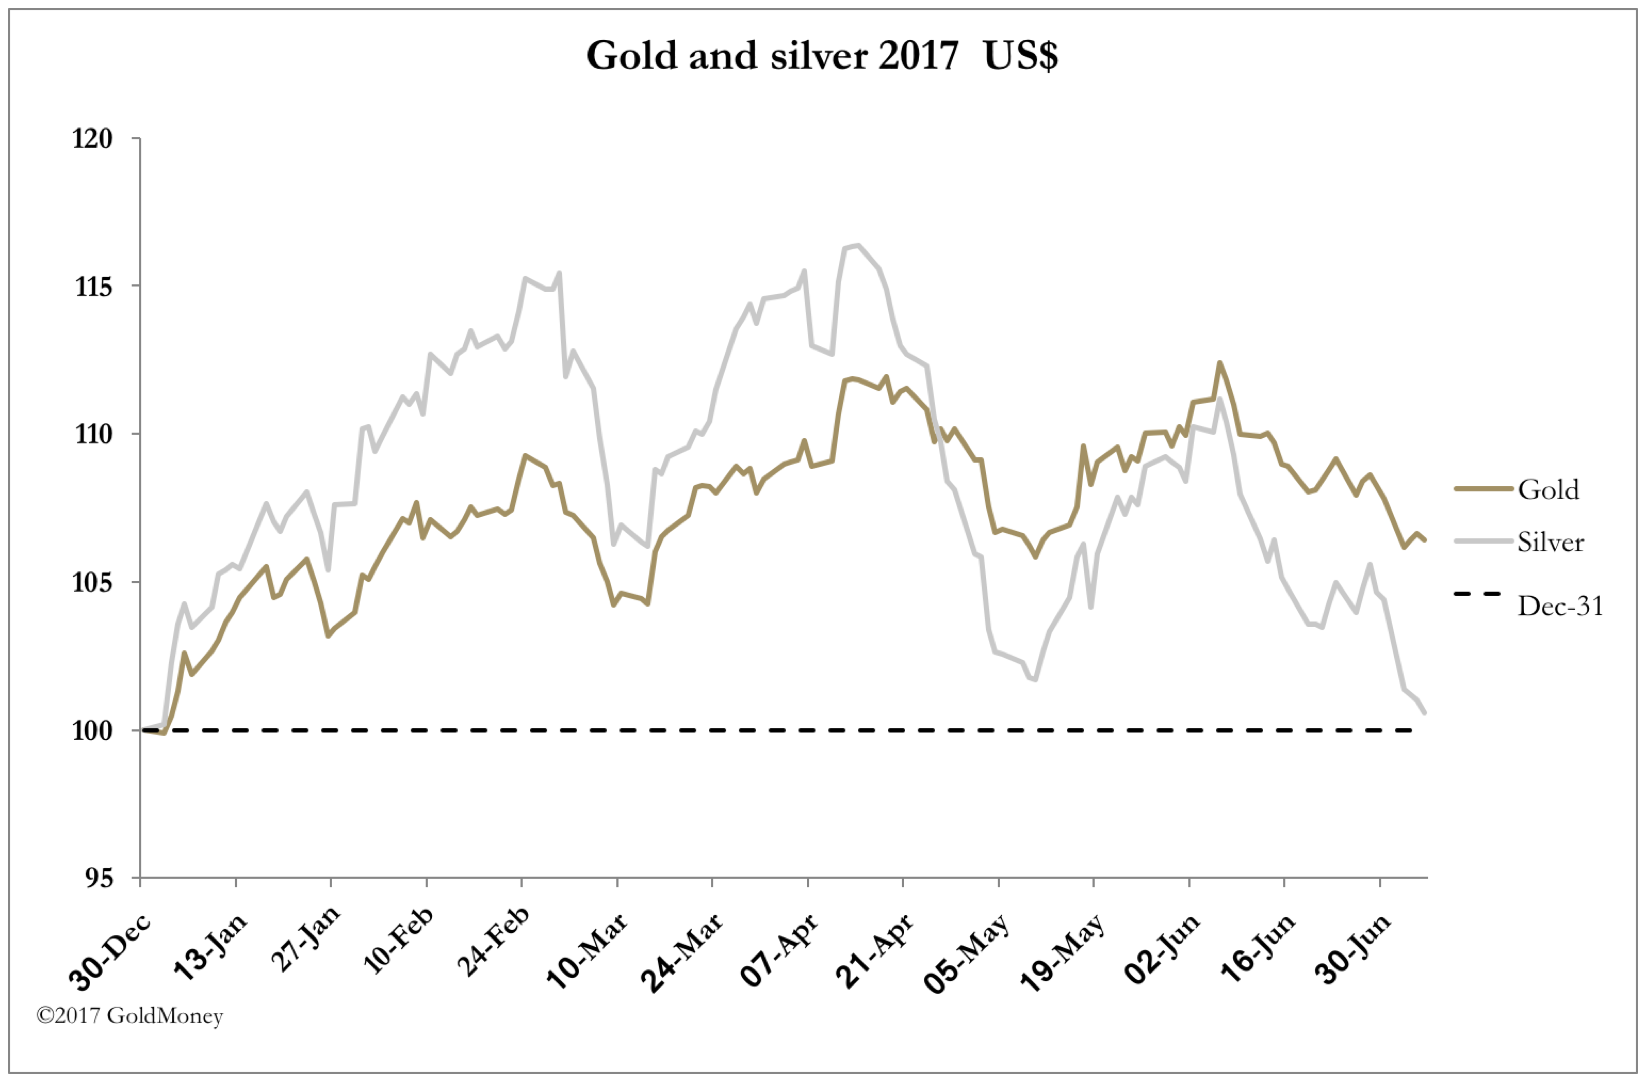 Gold vs. Silver June 30 2017